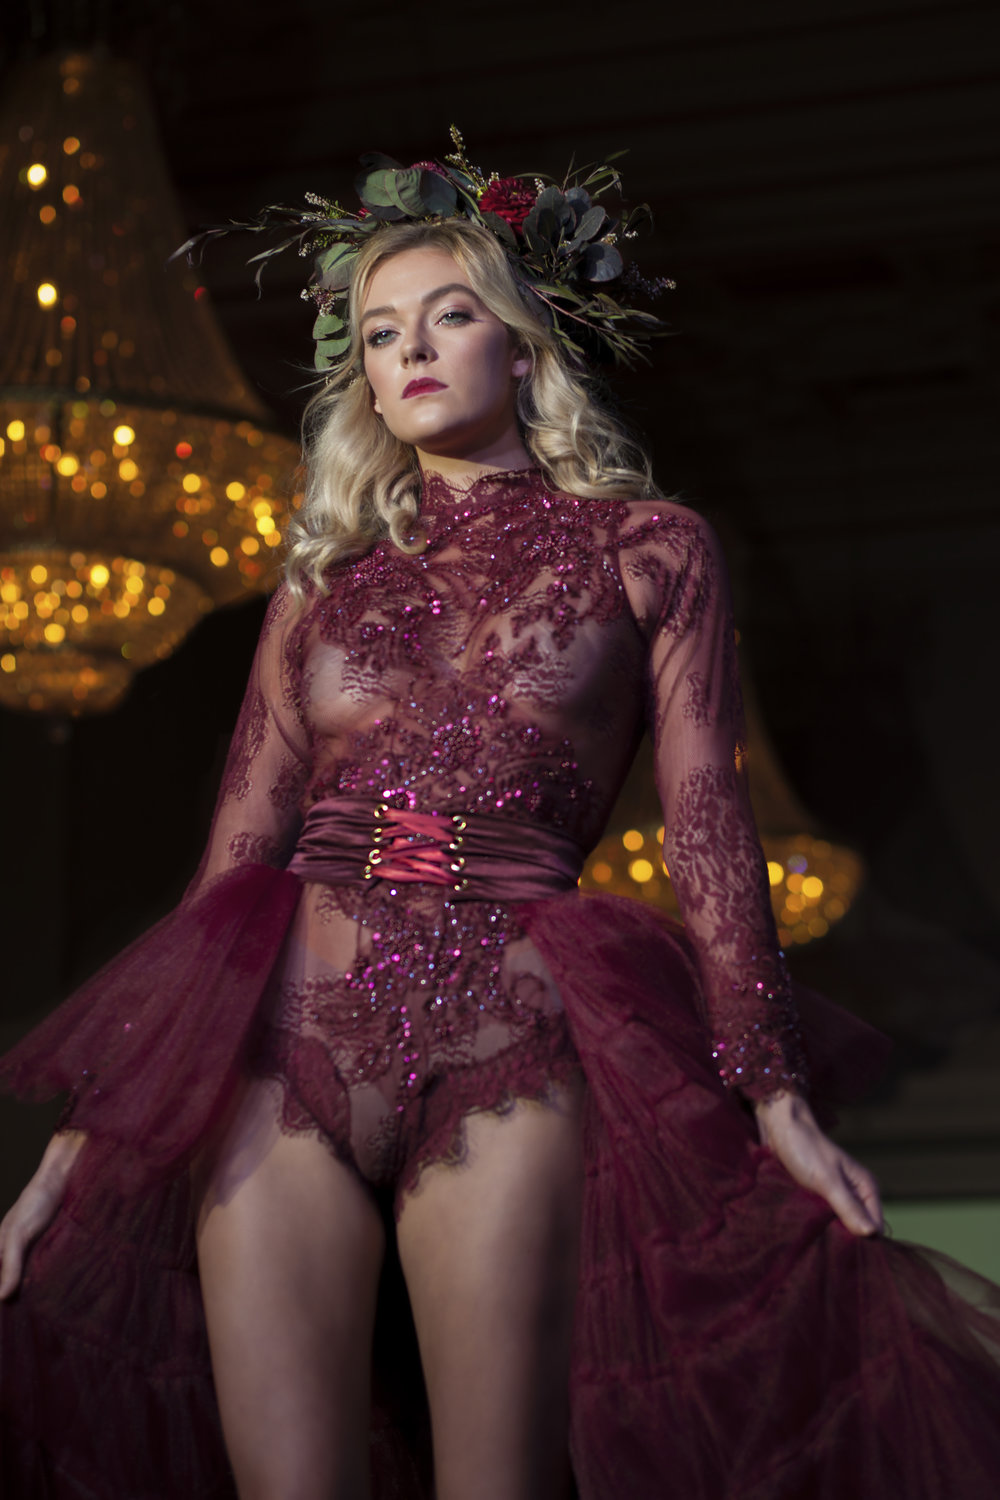 The stunning Nicole Petrie closed the set with a glamorous hand appliqued lace bodysuit and tiered tulle skirt made of 120 yards of tulle.